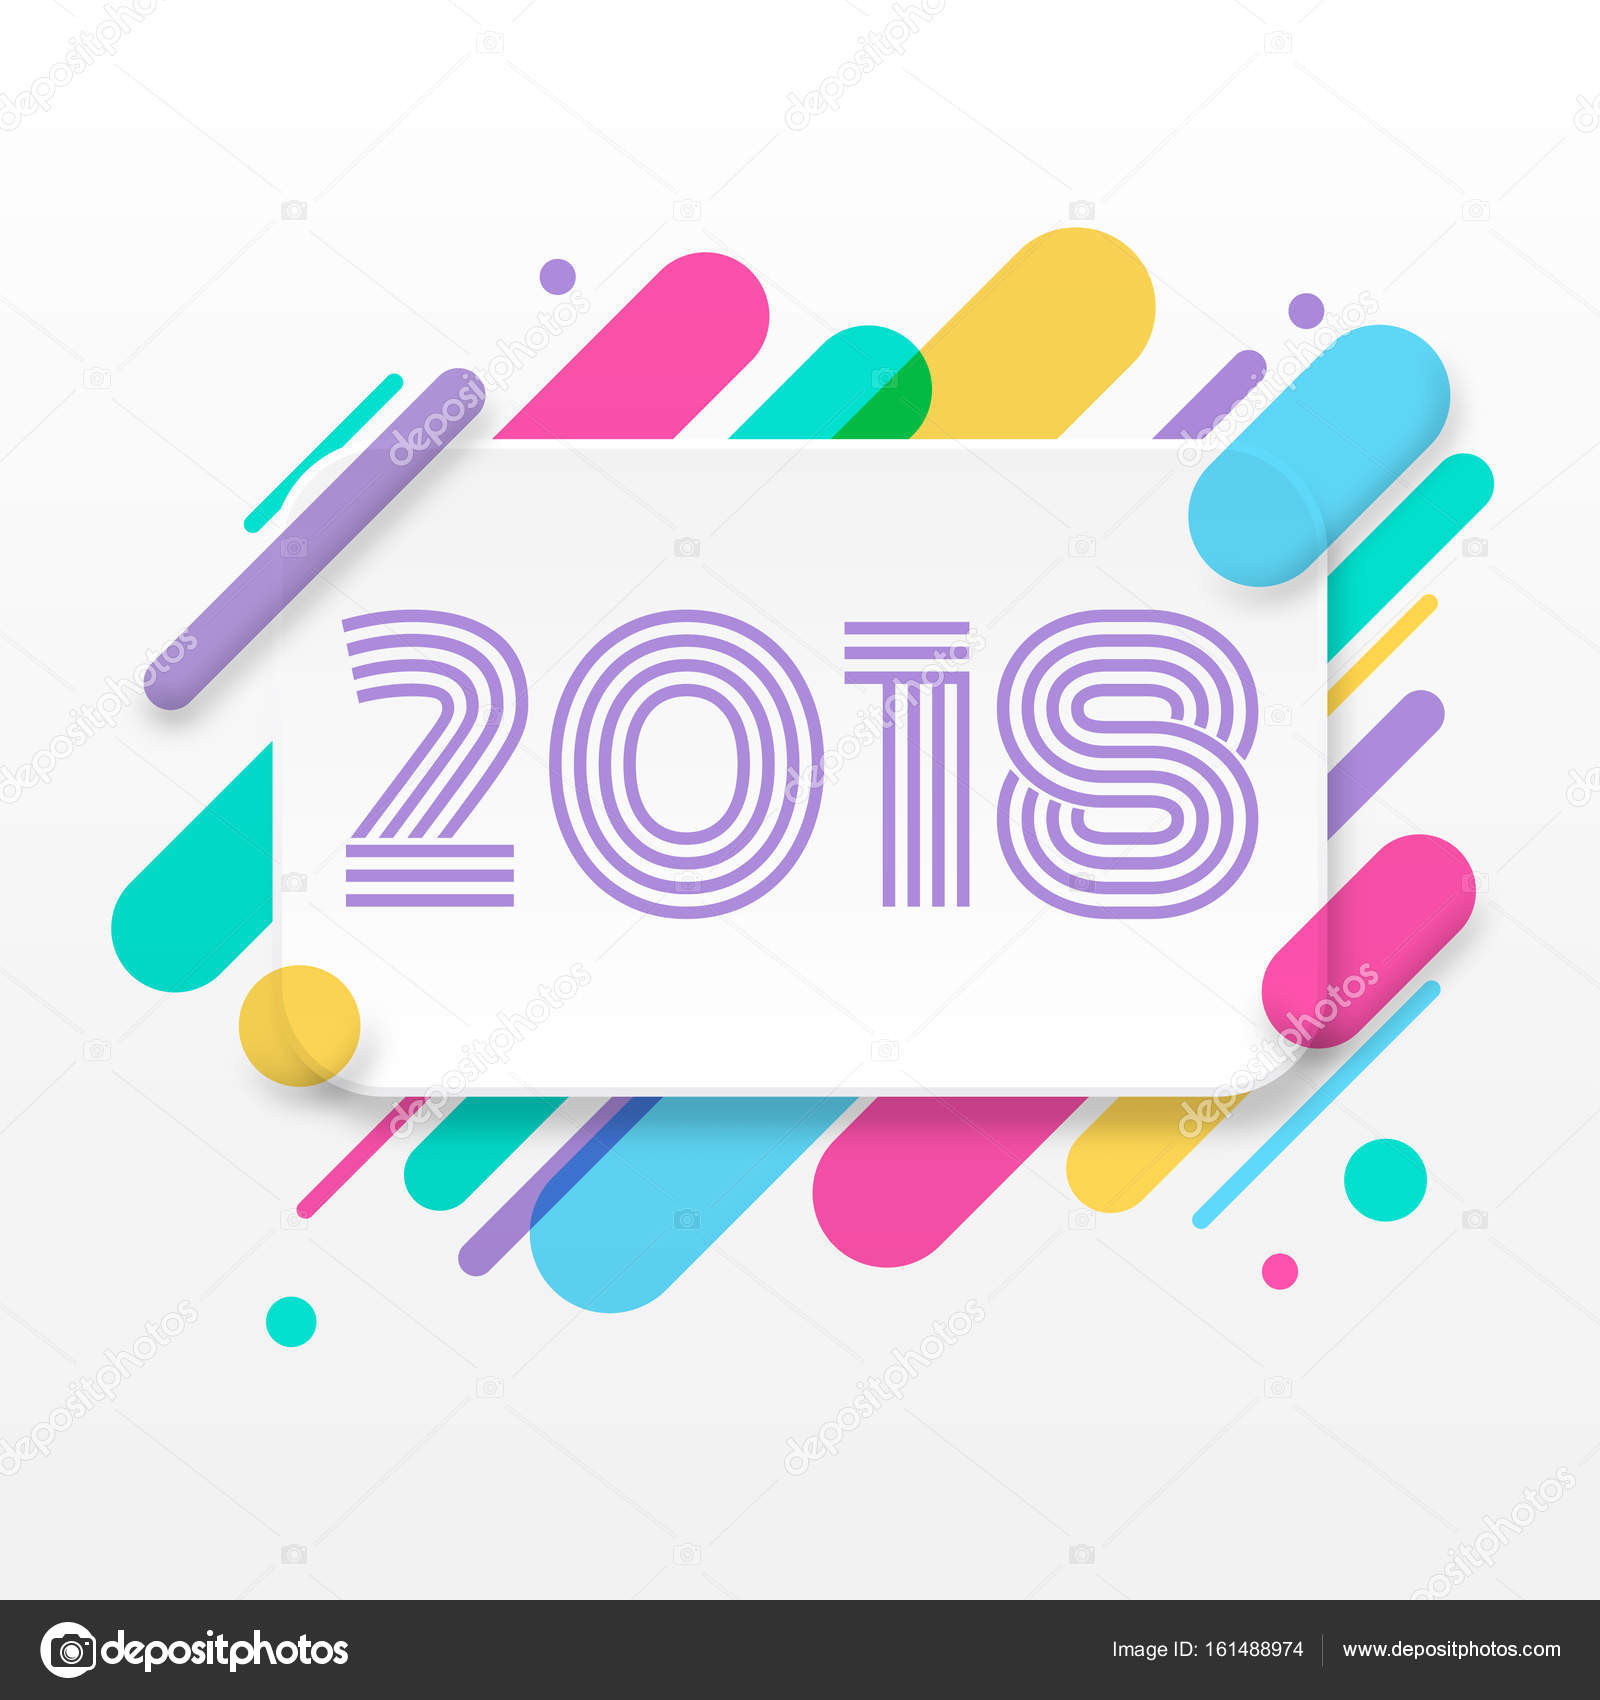 2018 happy new year greeting card stock vector serdiukigor 2018 happy new year greeting card with abstract colored rounded shapes lines in diagonal rhythm for greeting card poster brochure or flyer template kristyandbryce Choice Image